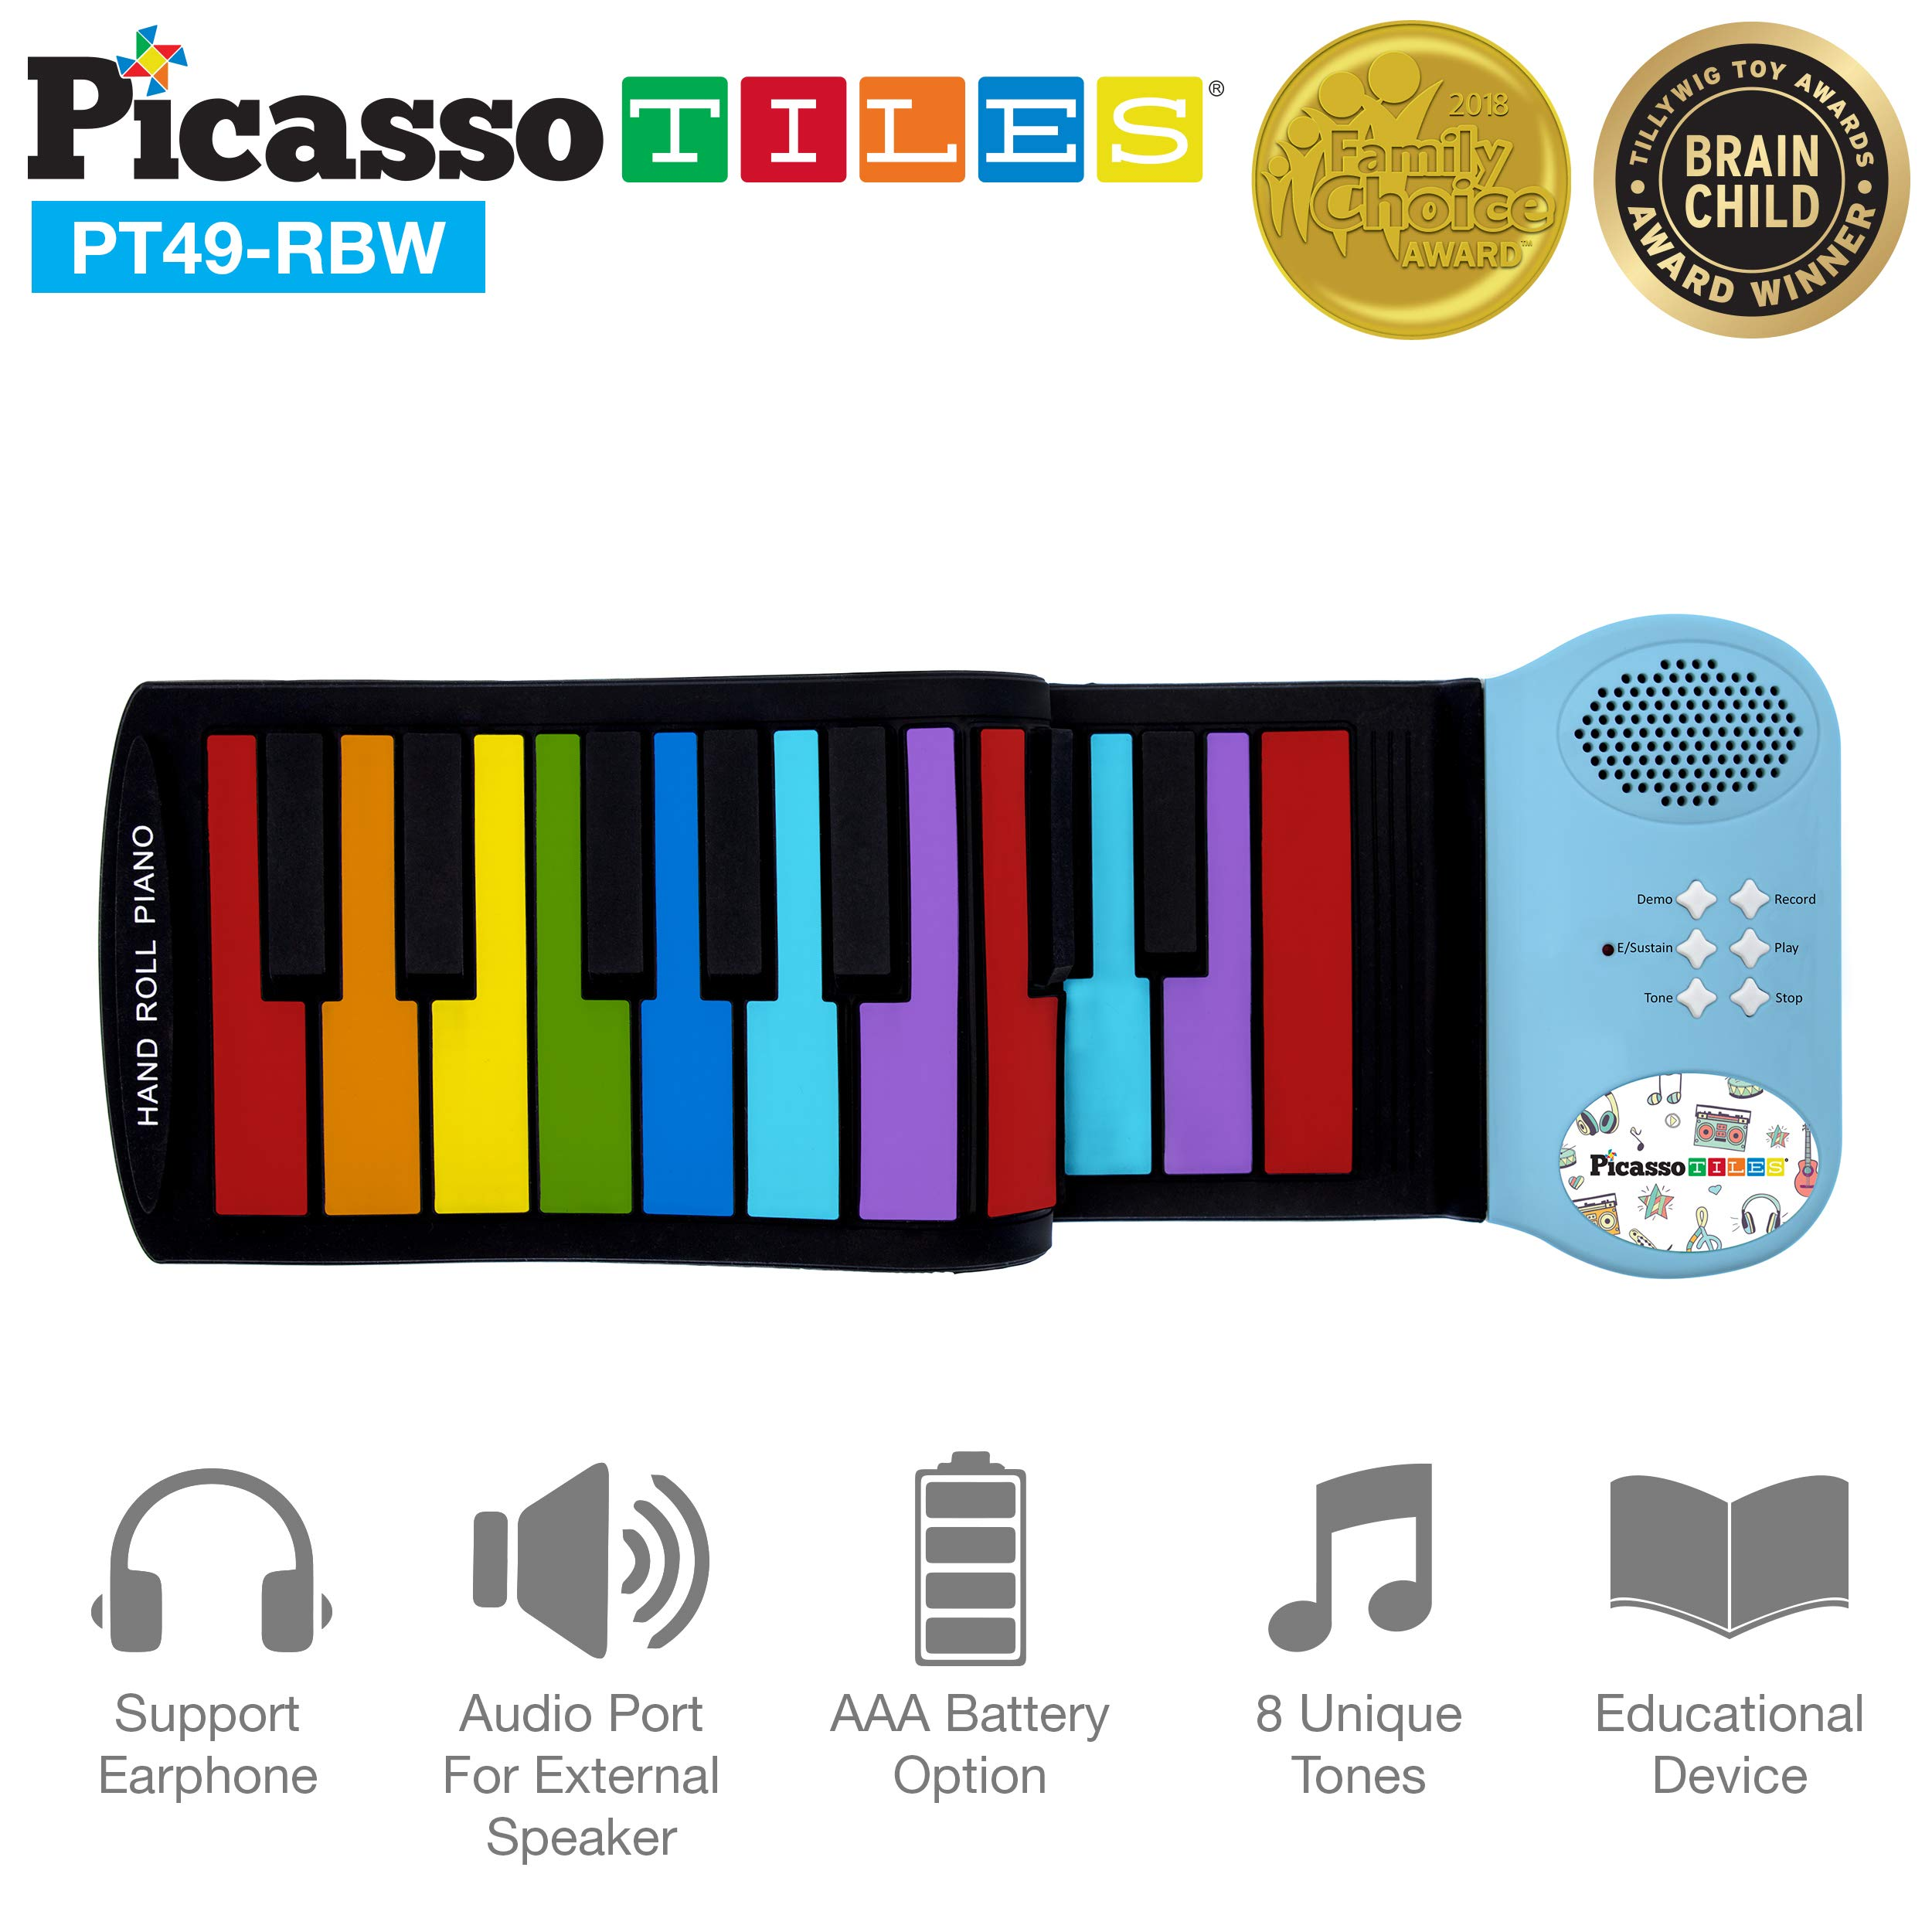 PicassoTiles PT49 Kid's 49-Key Flexible Roll-Up Educational Electronic Digital Music Piano Keyboard w/ Recording Feature, 8 Different Tones, 6 Educational Demo Songs & Build-in Speaker - Rainbow by PicassoTiles